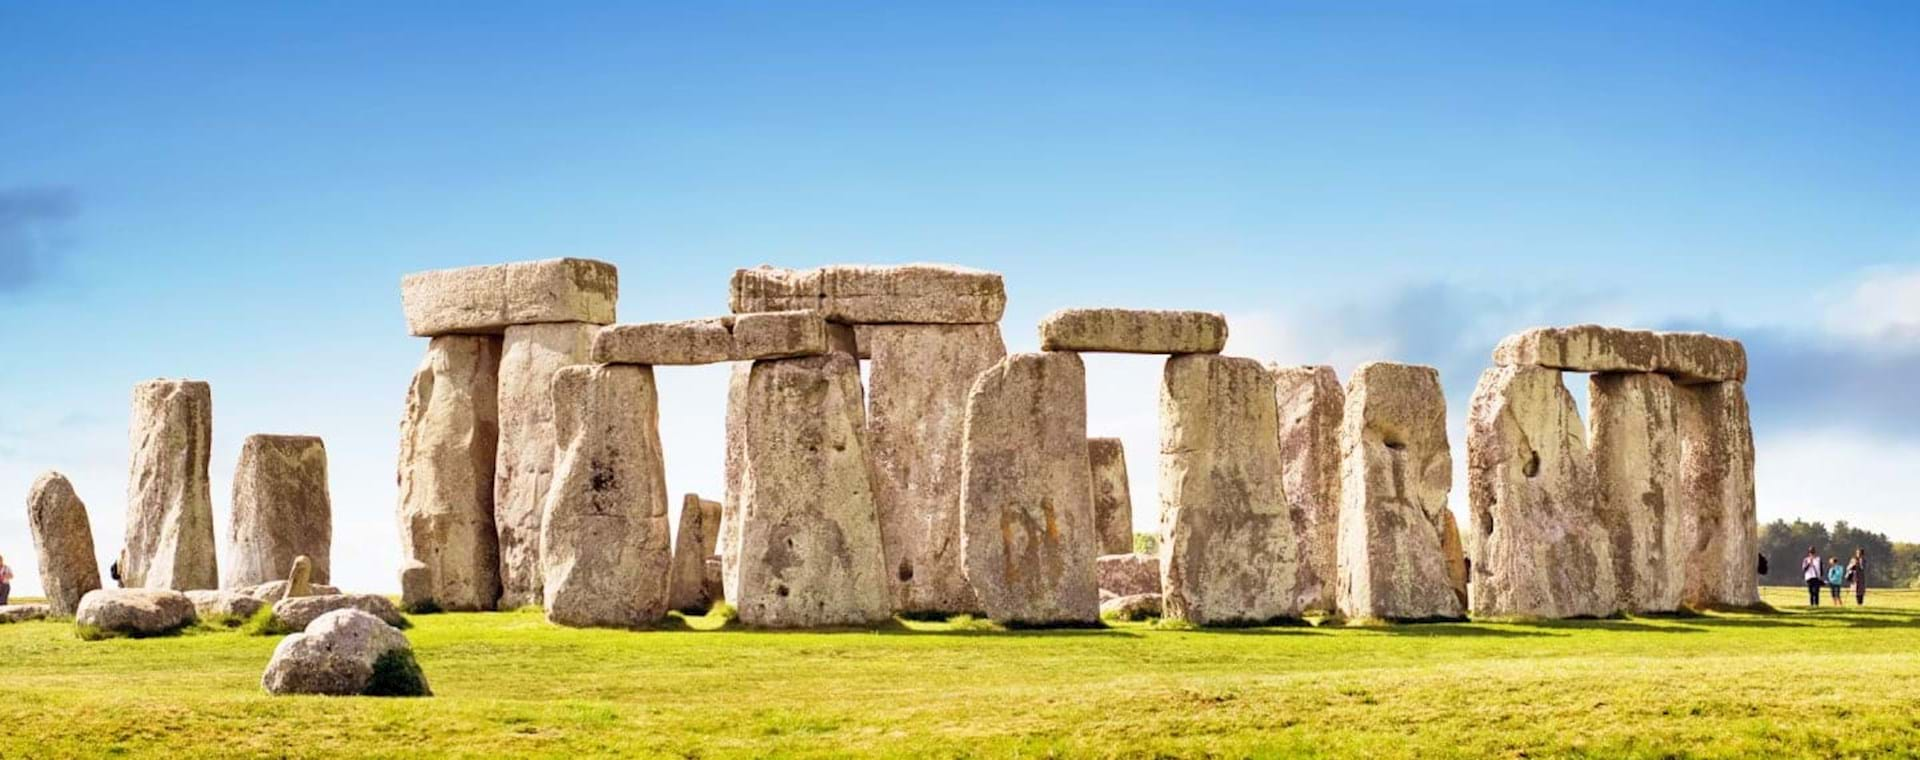 Day Trip: Stonehenge, Windsor and Bath from London